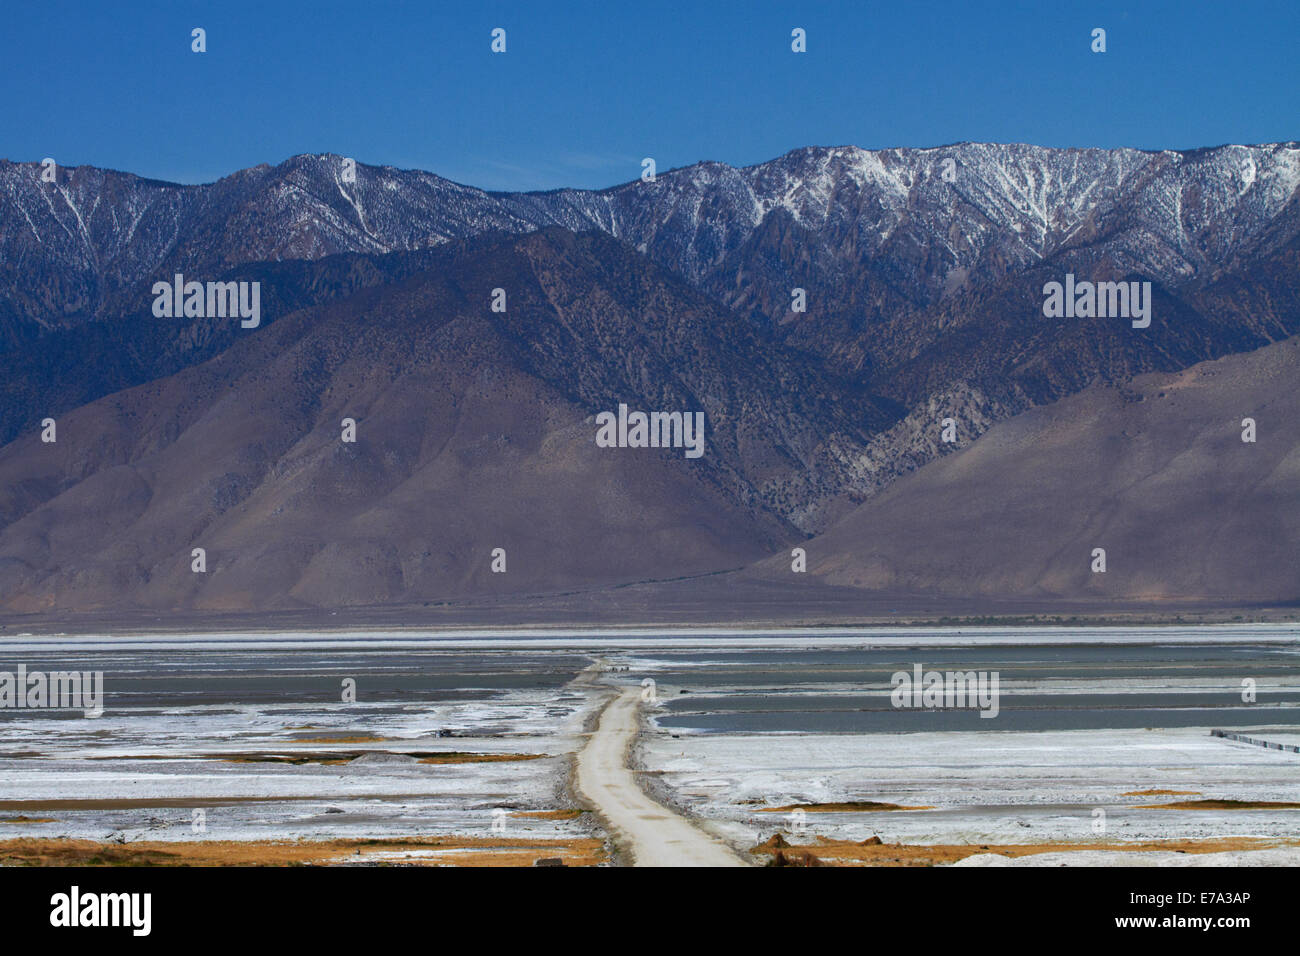 Sulfate Road across Owens Lake (mainly dry salt lake), Owens Valley, and Sierra Nevada Mountain Range, California, - Stock Image